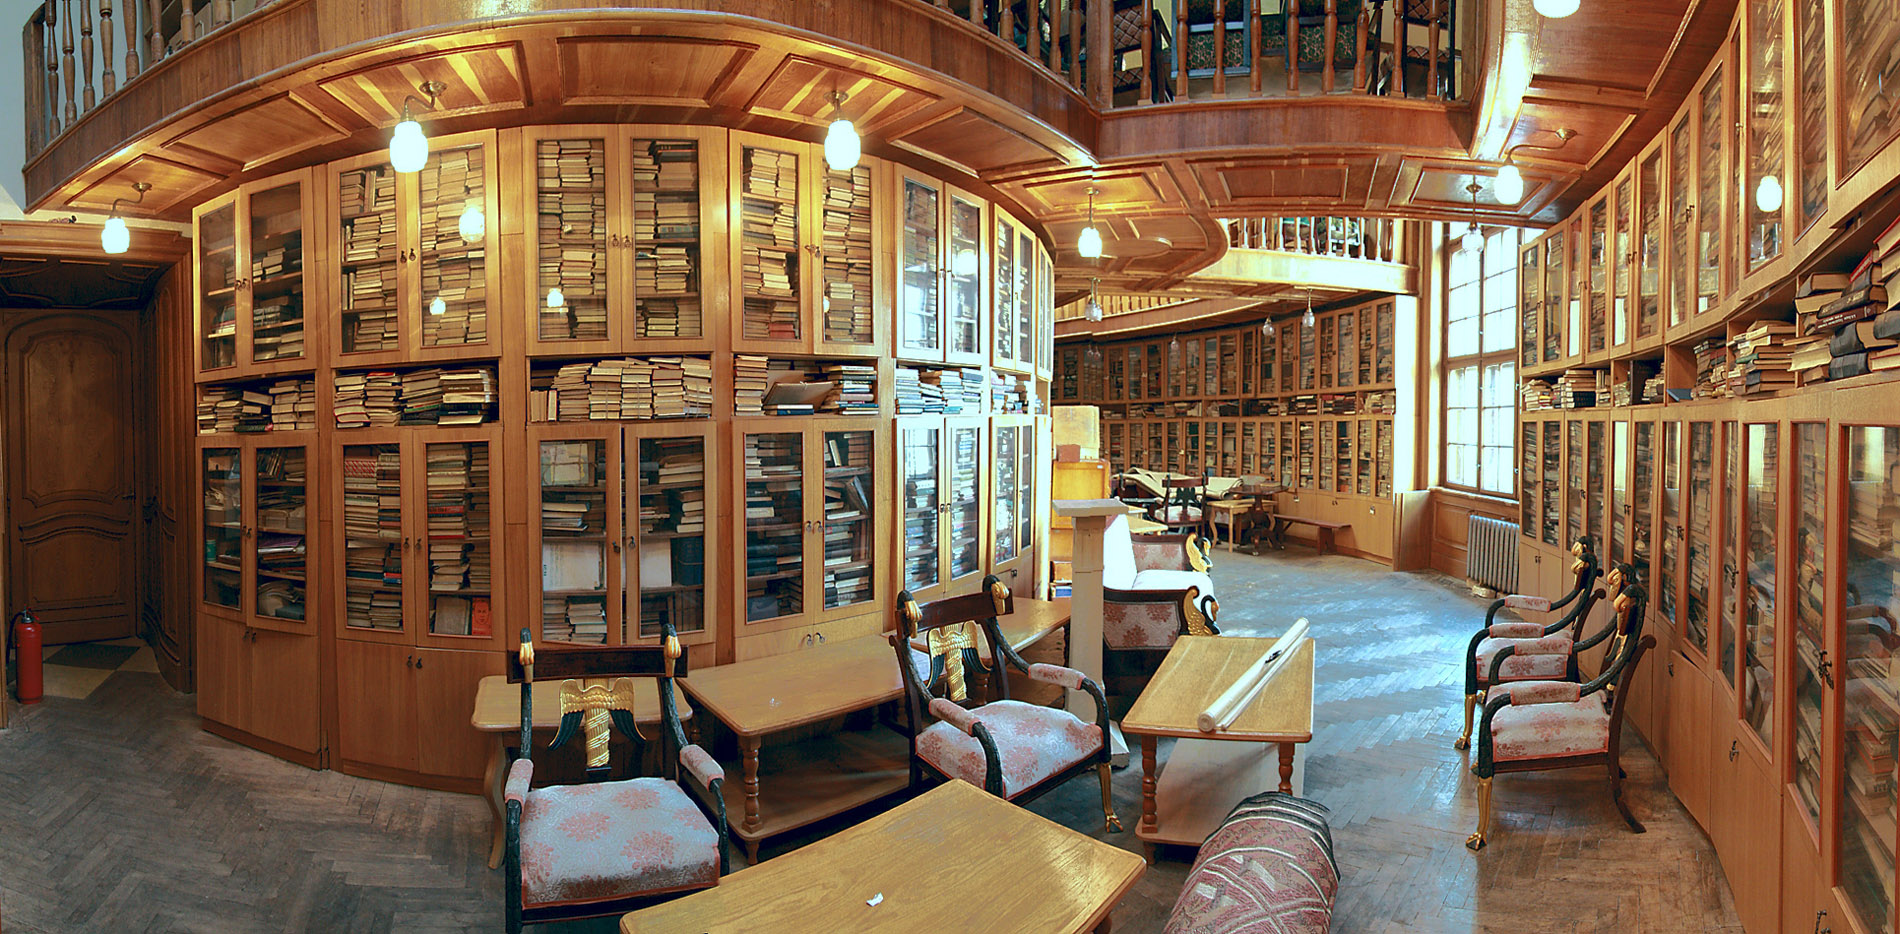 Library In House Of Scientists Lviv Ukraine